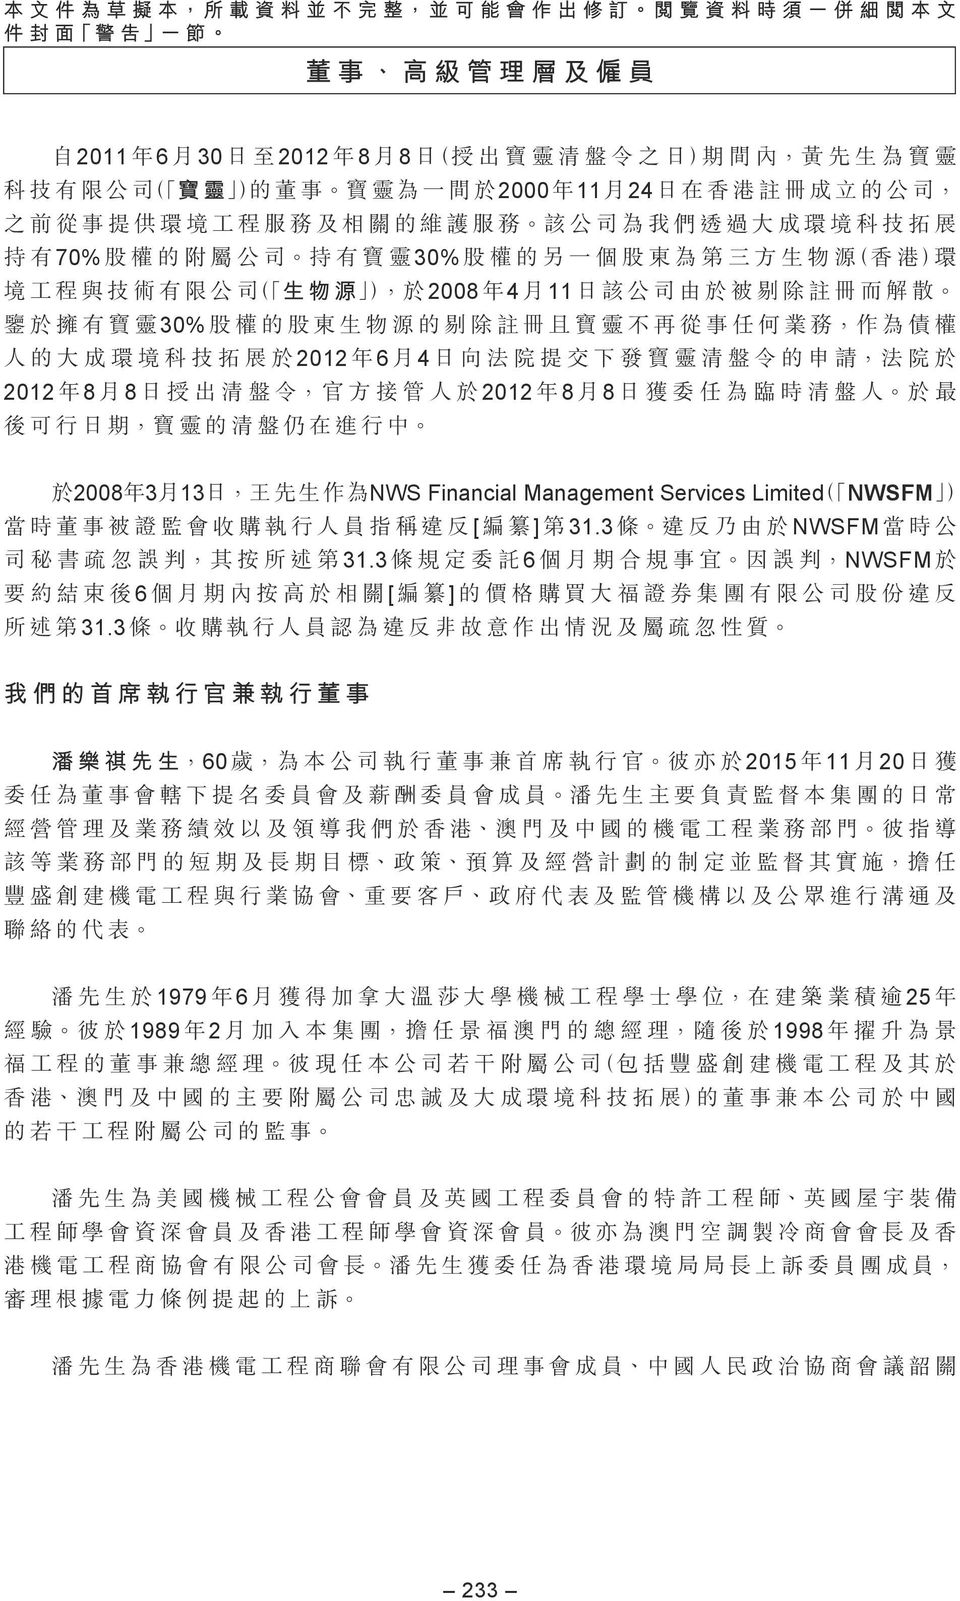 Management Services Limited NWSFM [ ] 31.3 NWSFM 31.